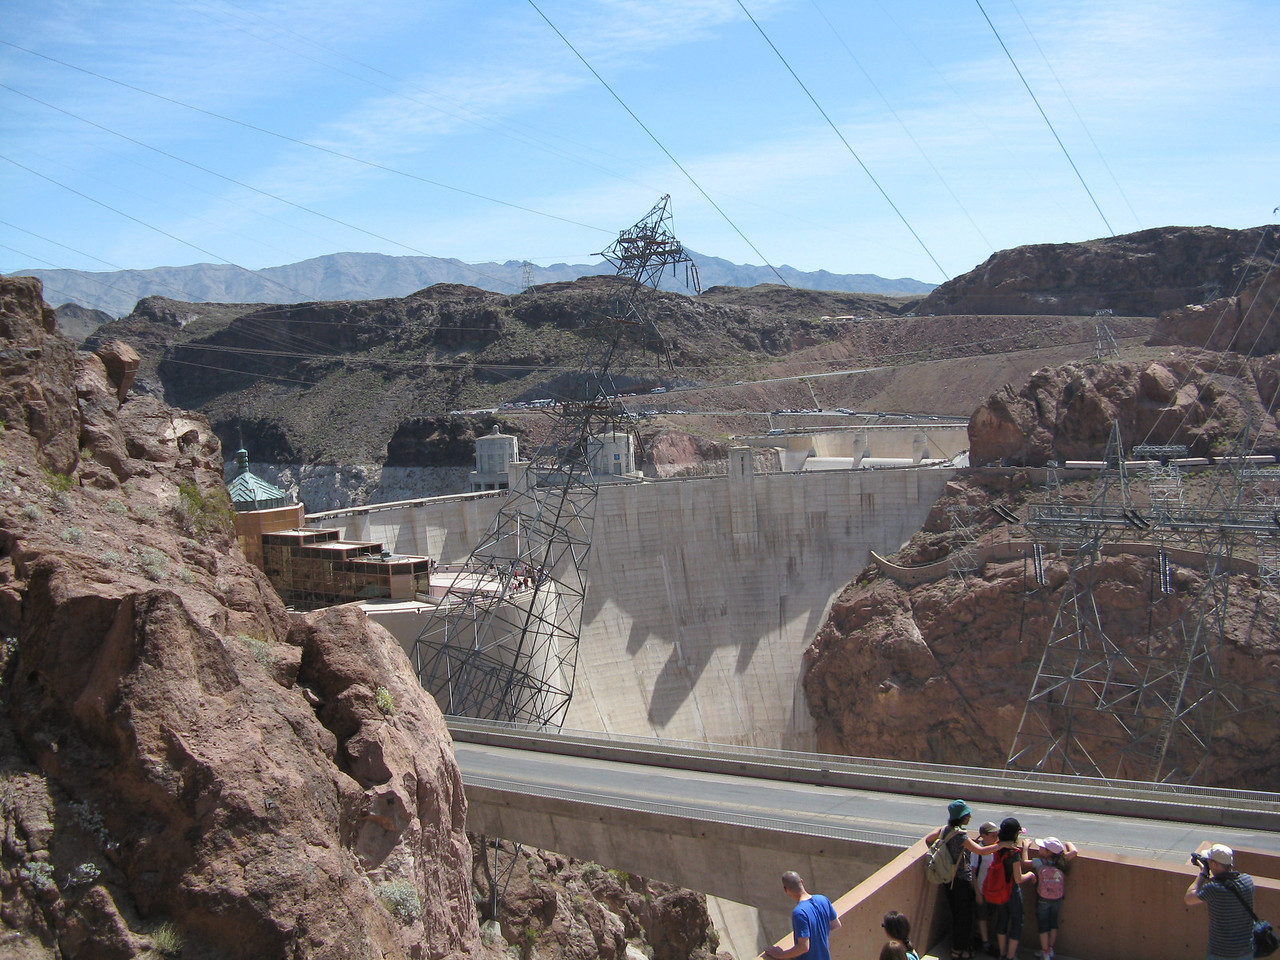 Hoover Dam, seen from the parking structure.